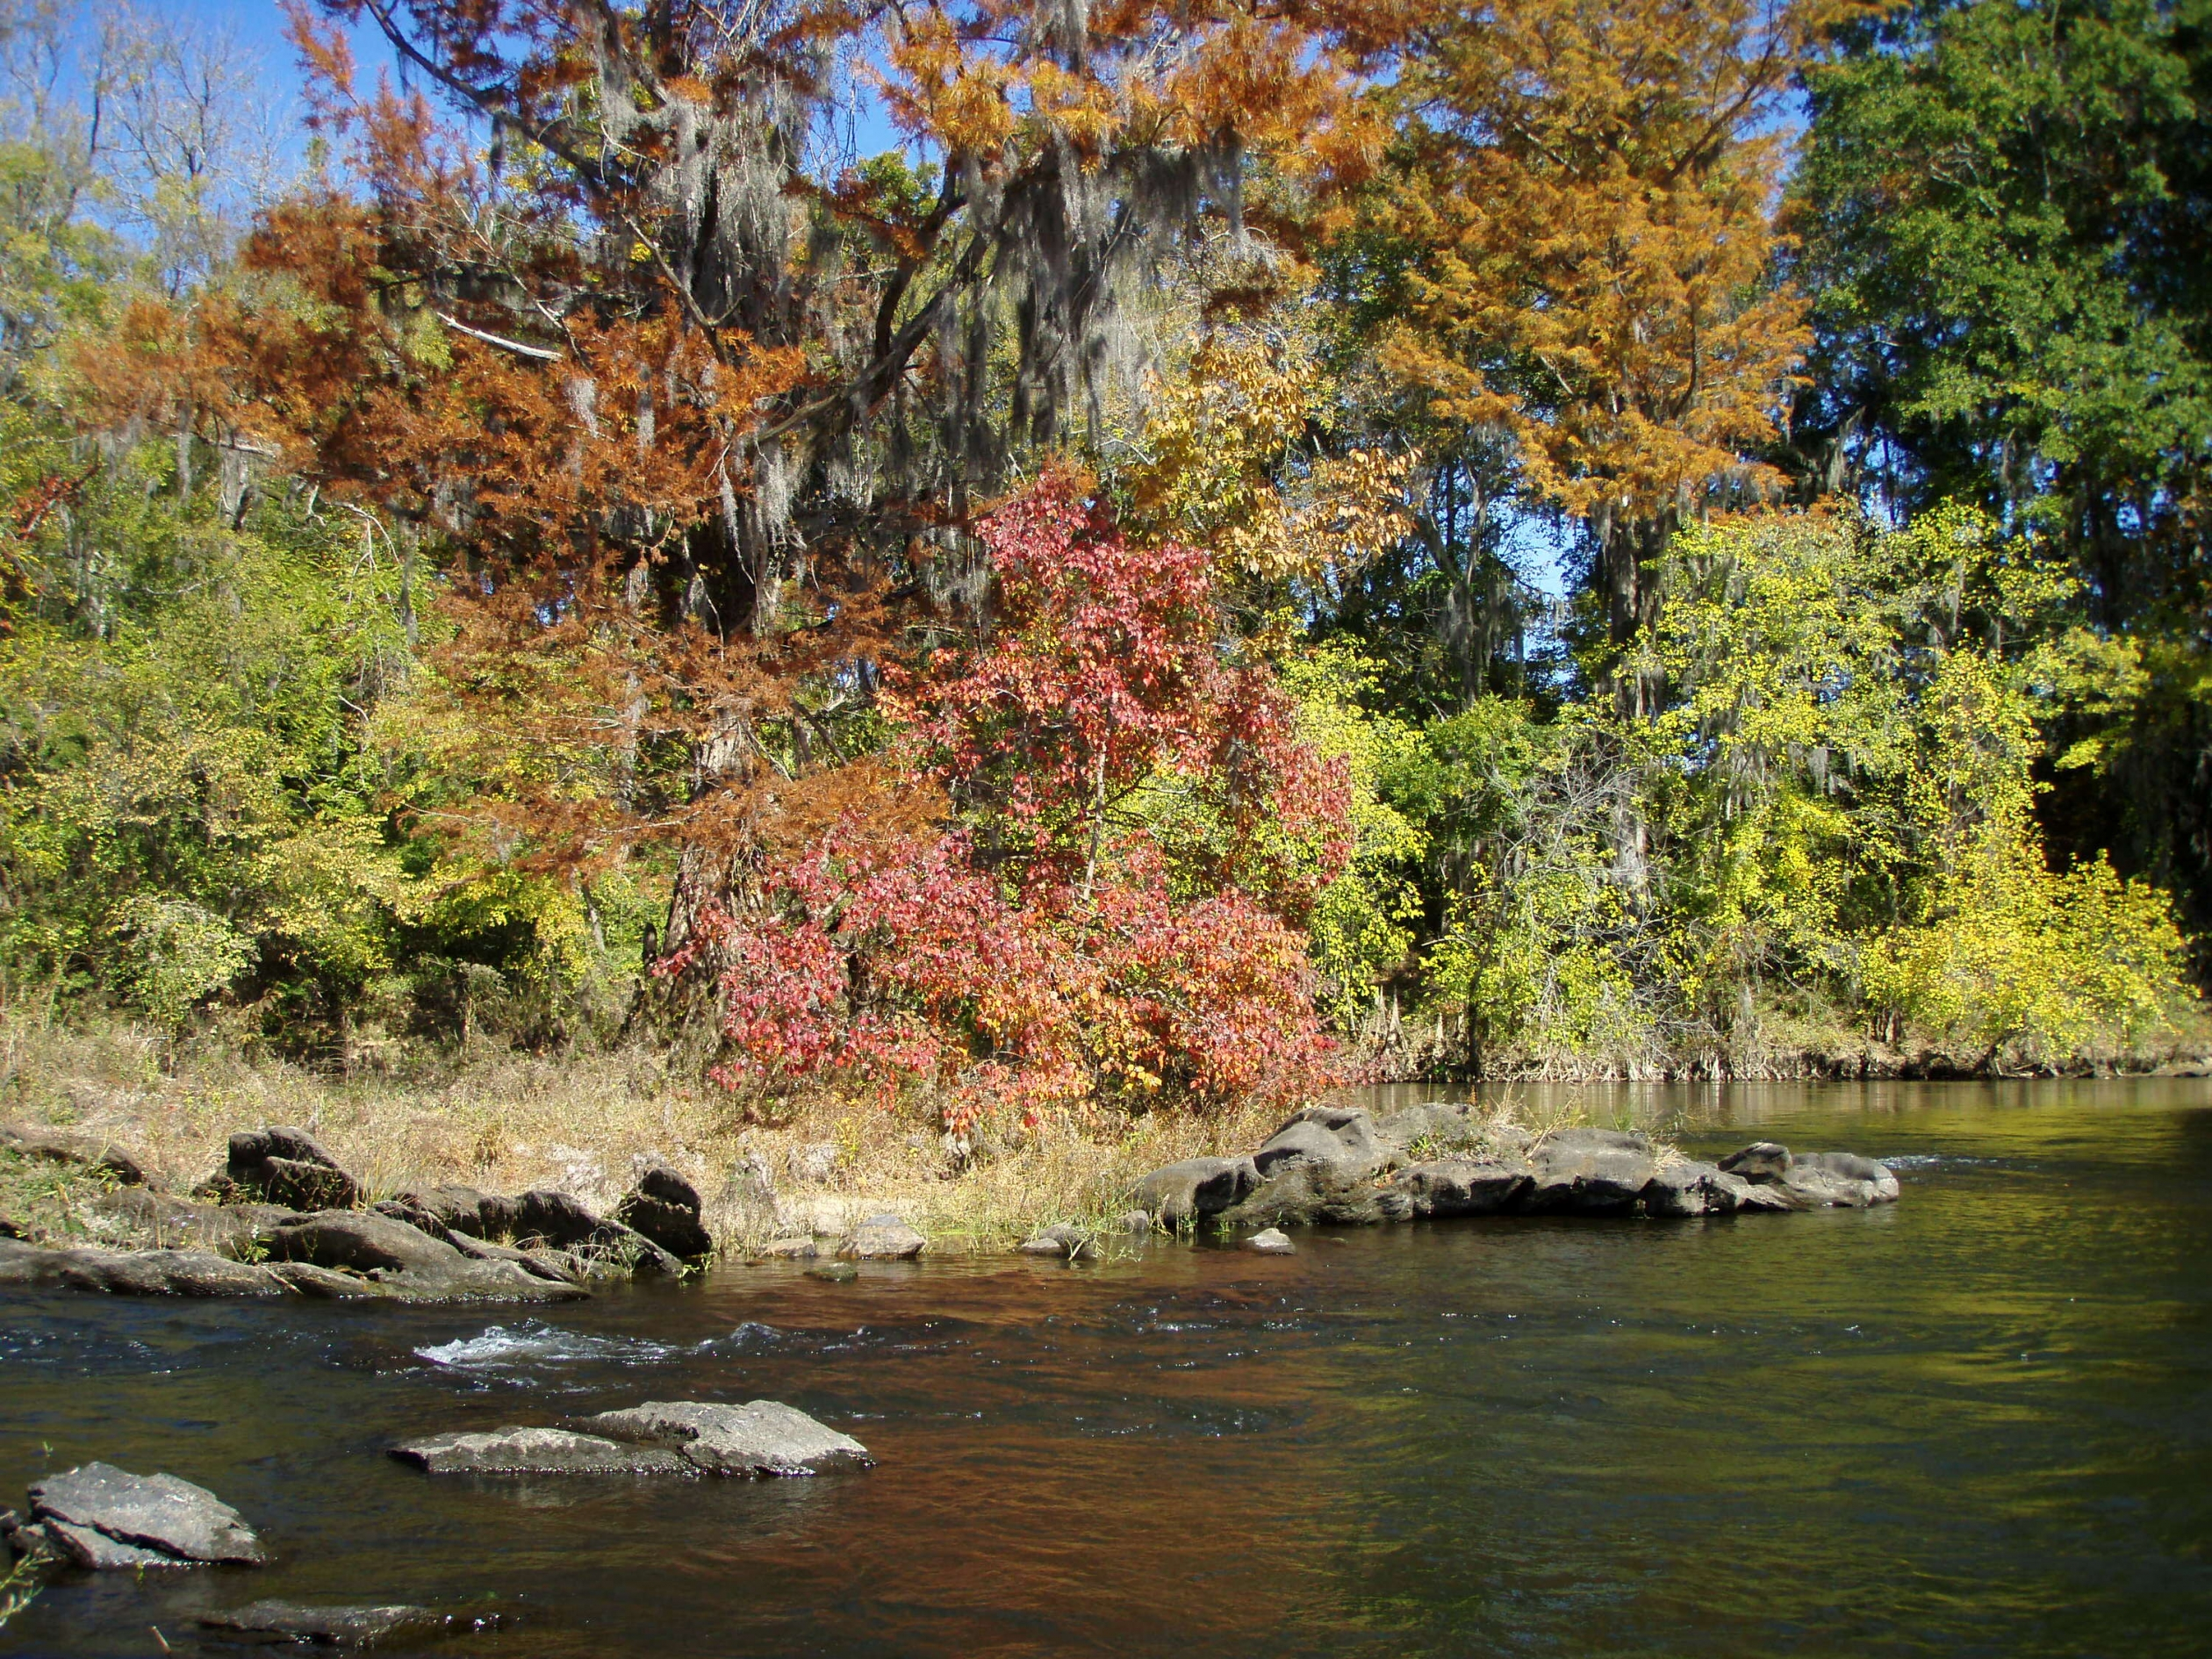 Red, orange, and green leaves on trees lining the banks of the Coosa River along the Alabama Scenic River Trail